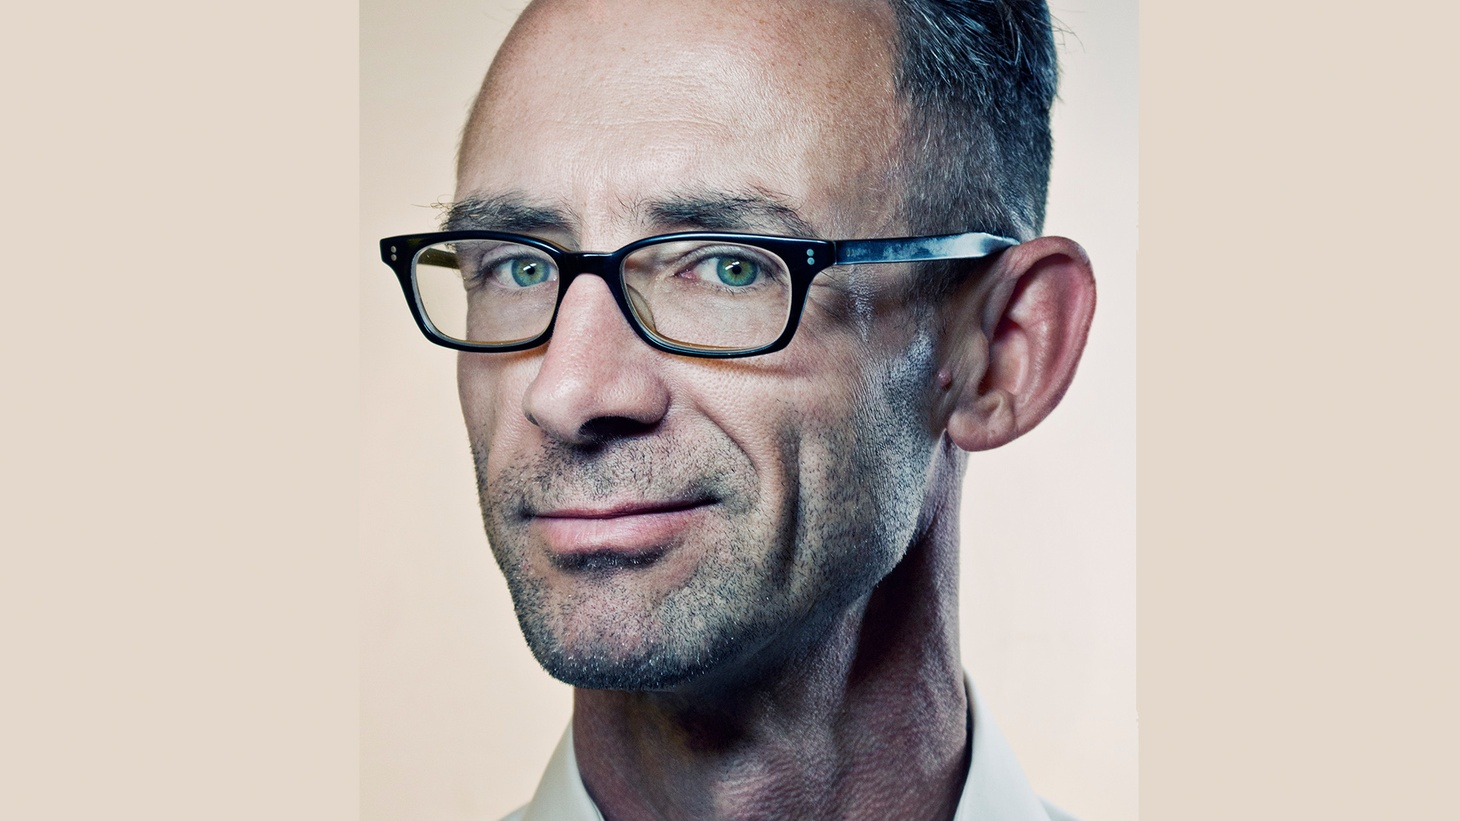 Chuck Palahniuk is the author of over a dozen books including the award-winning novel Fight Club, which was also made into a feature film. Not surprisingly, he tends toward storytellers like Don McLean and Gordon Lightfoot in his music picks.